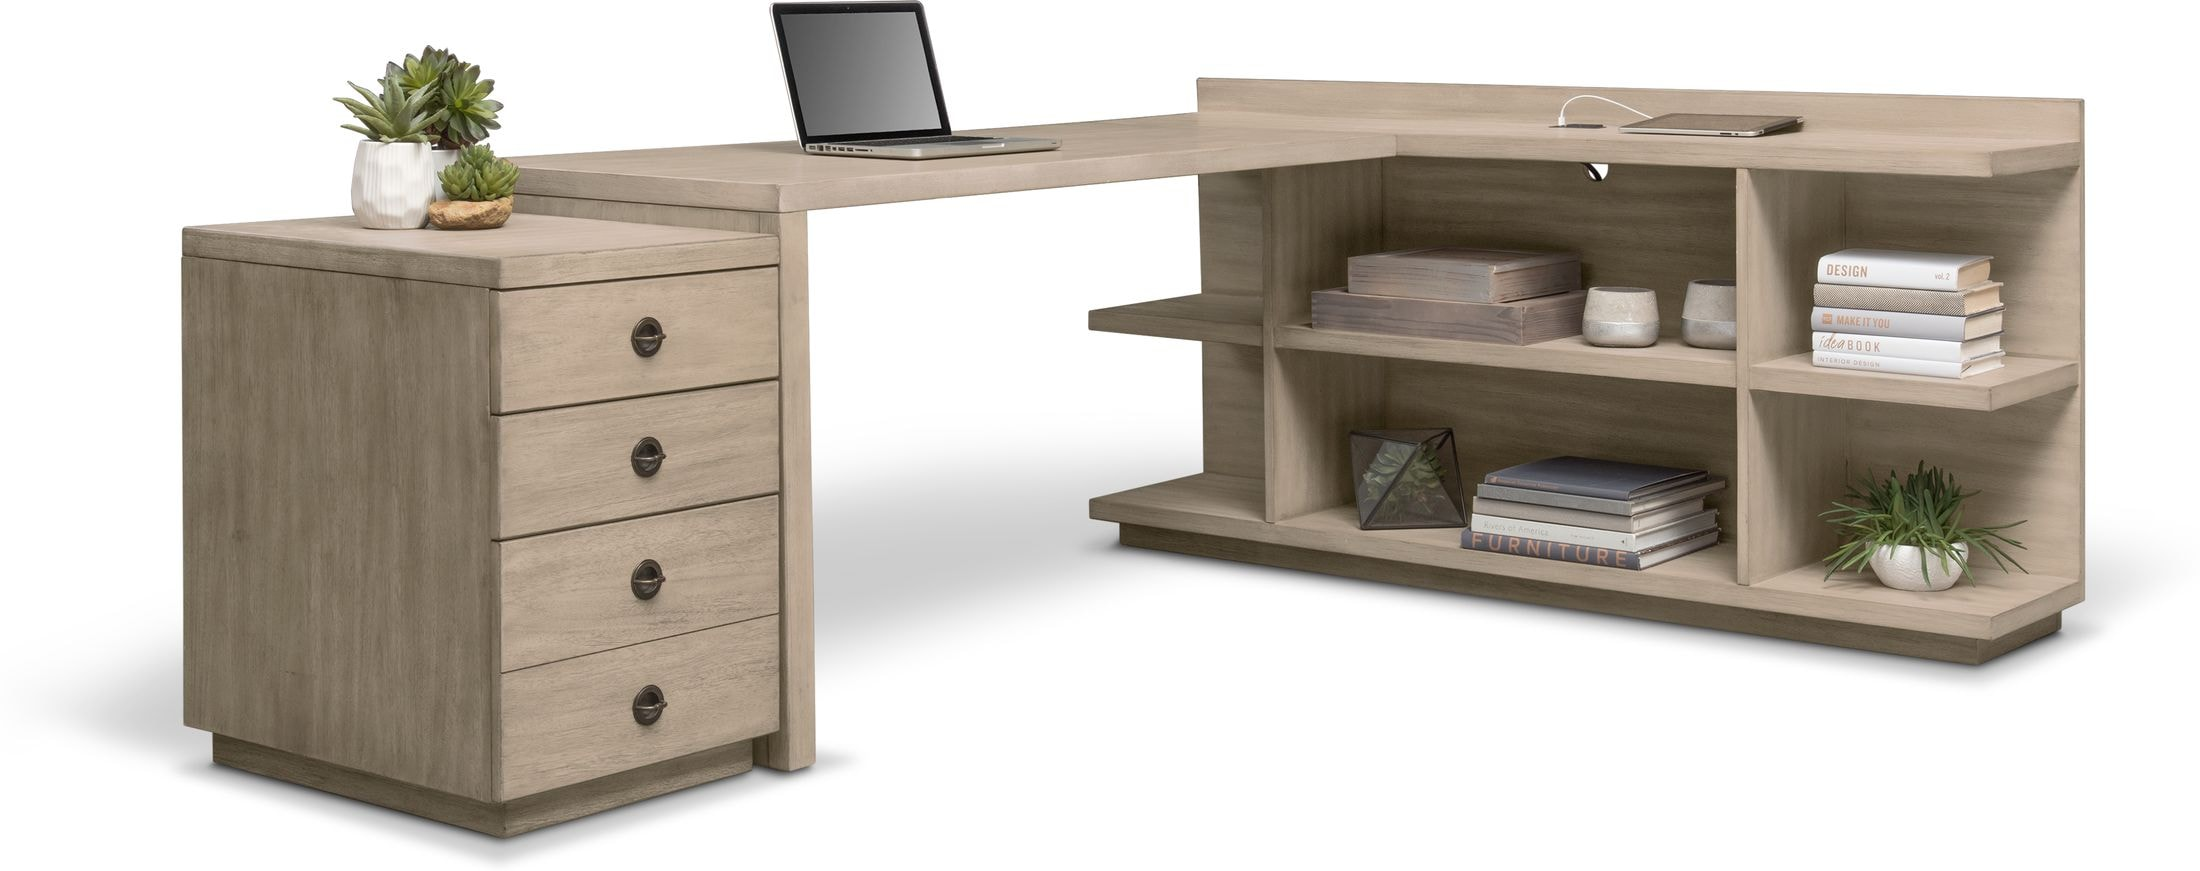 Home Office Furniture - Barclay Desk